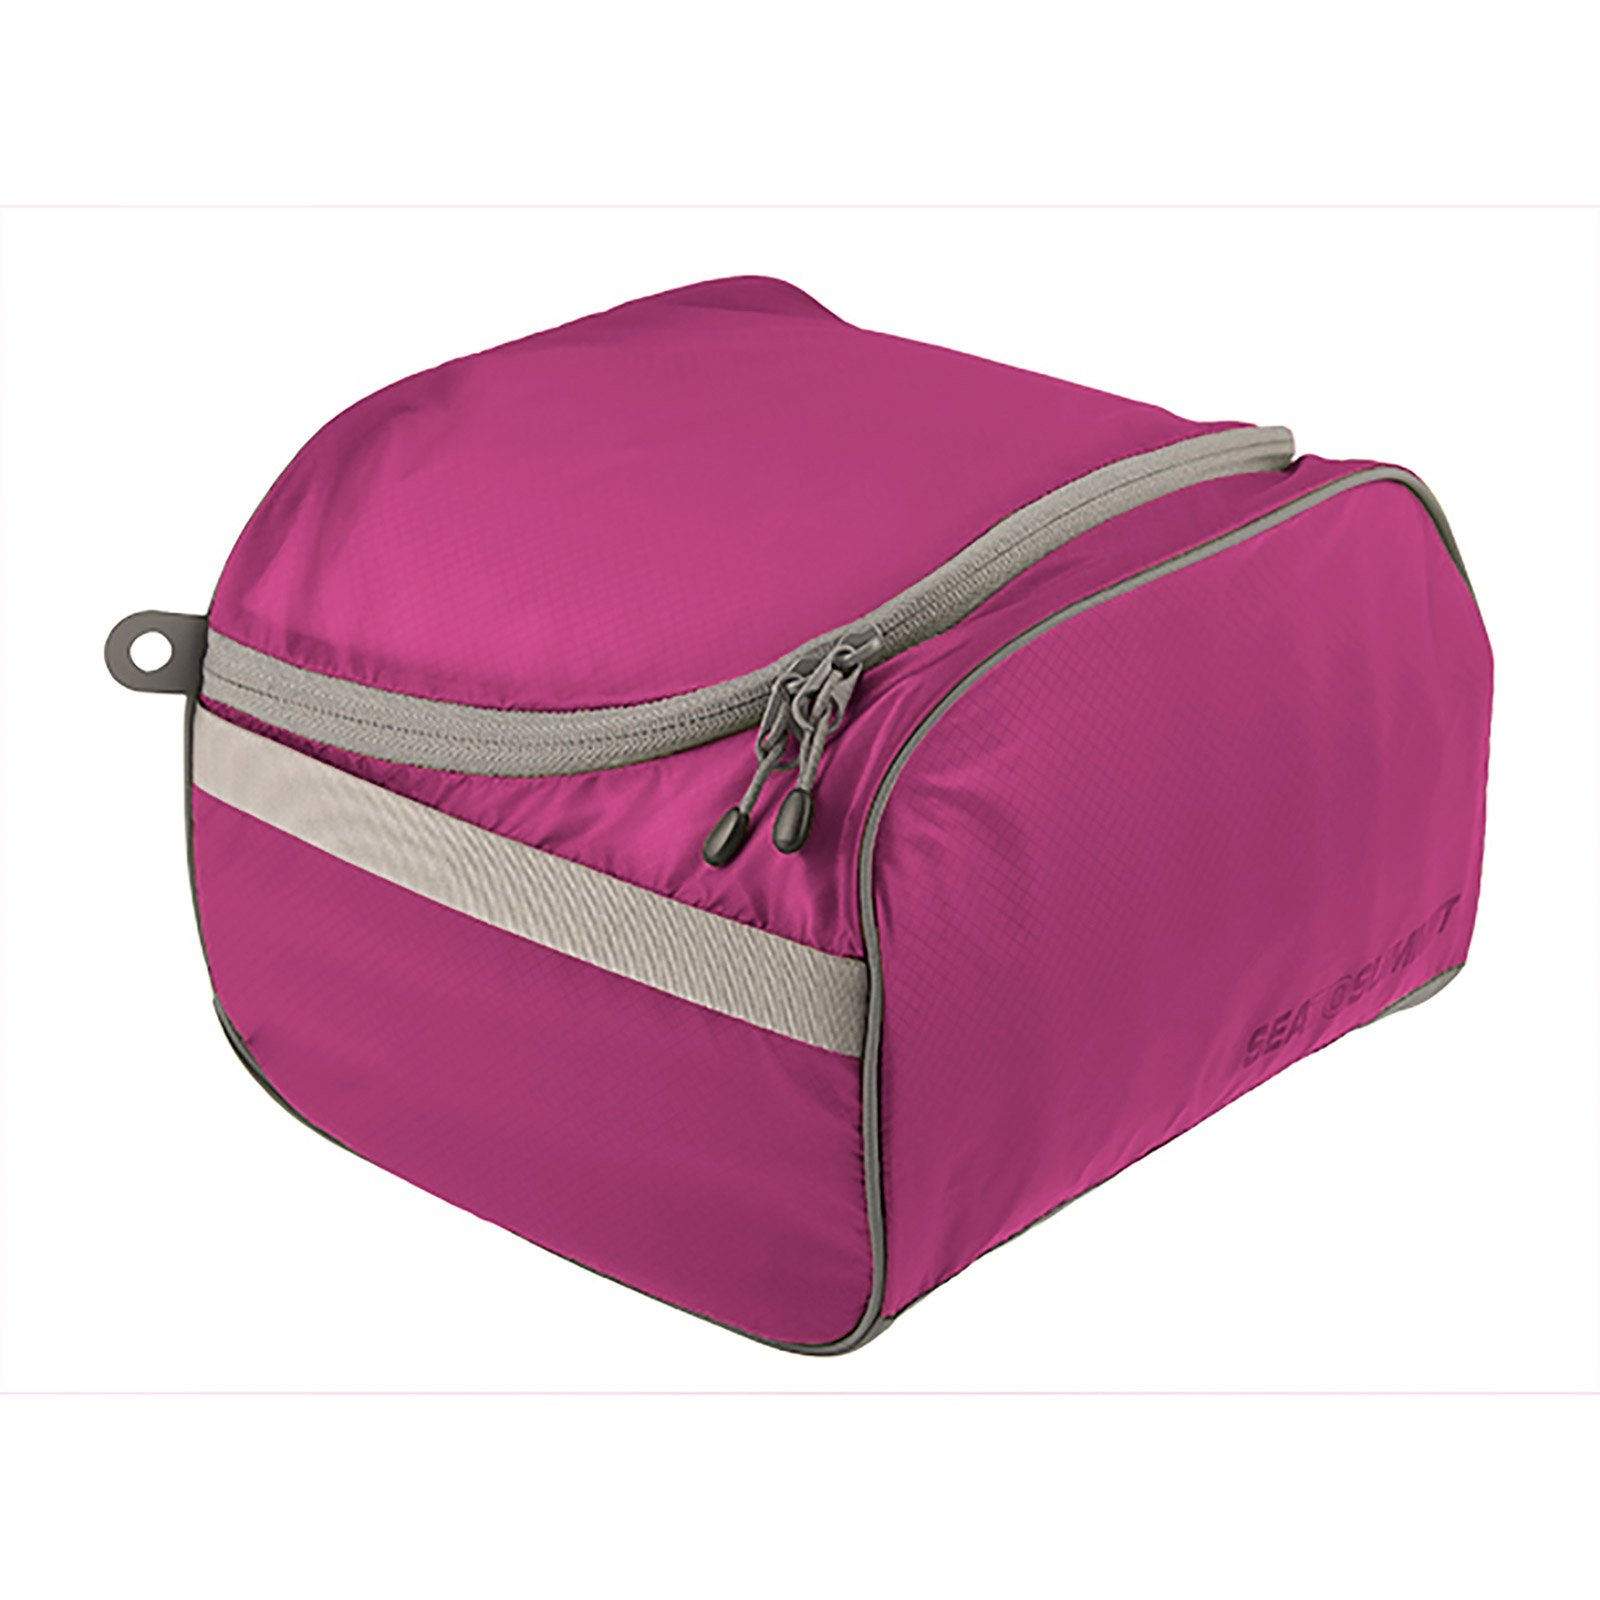 Travelling Light Toiletry Cell - Large